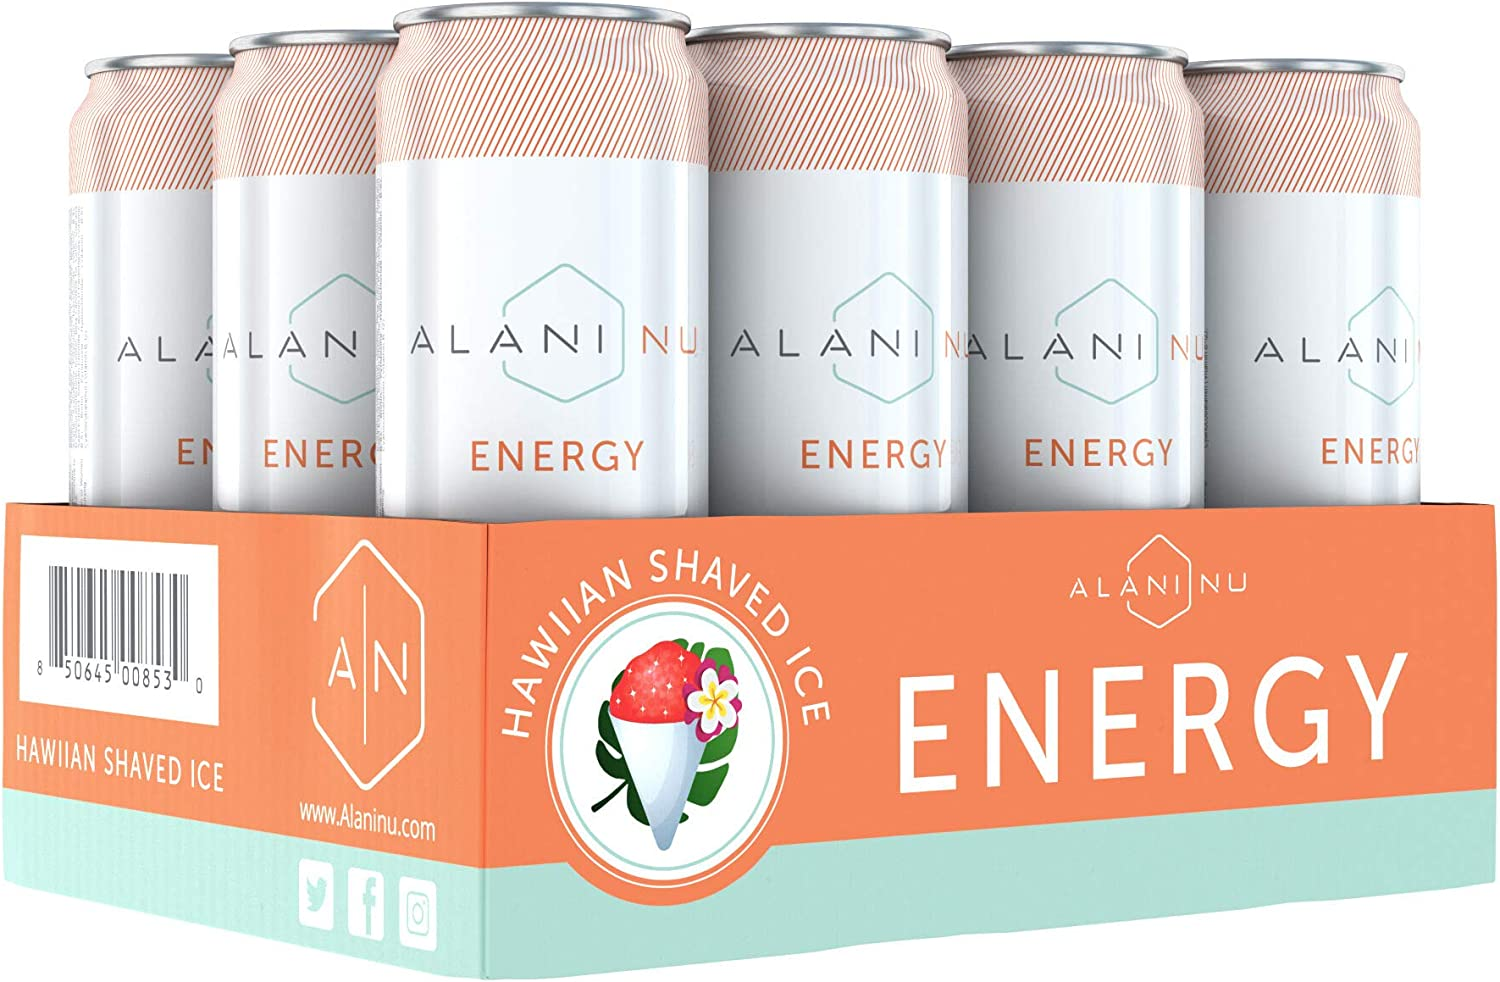 Alani Nu Sugar-Free Energy Drink, Pre-Workout Performance, Hawaiian Shaved Ice, 12 oz Cans (Pack of 12)